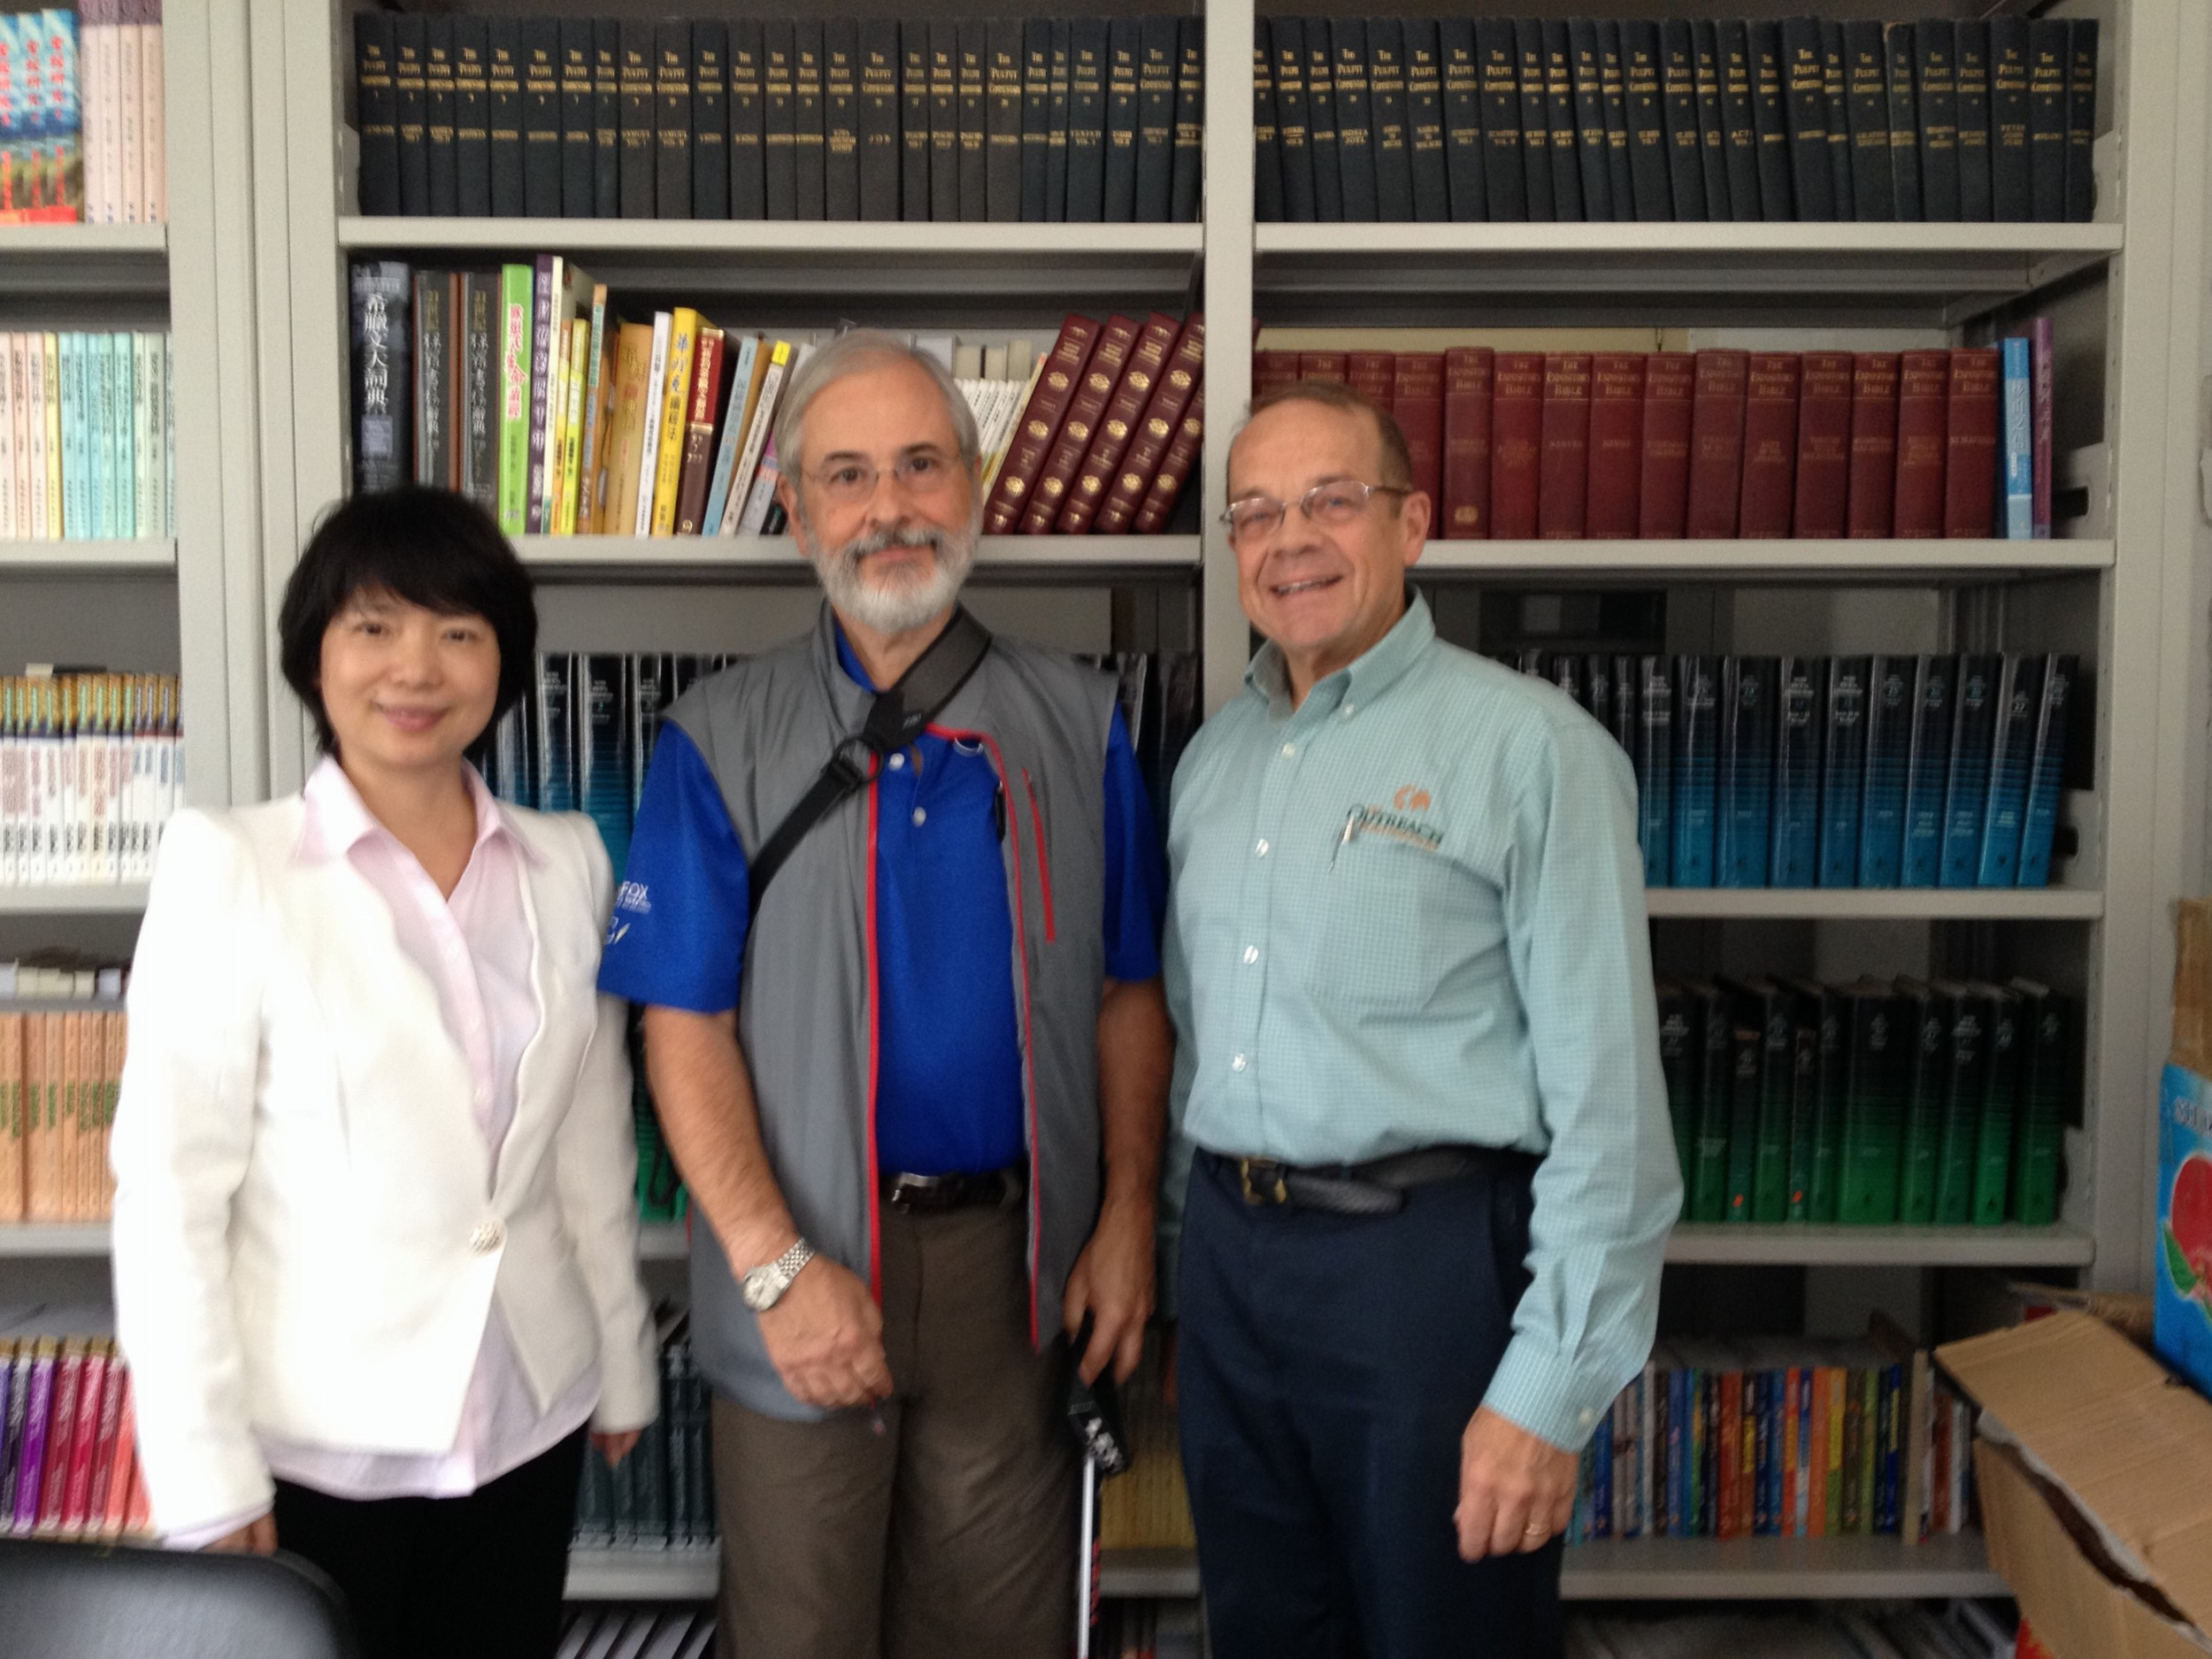 Dr. Fan, Ed Wood of Shadyside Presbyterian Church, Pittsburgh, and Jeff Ritchie with The Outreach Foundation